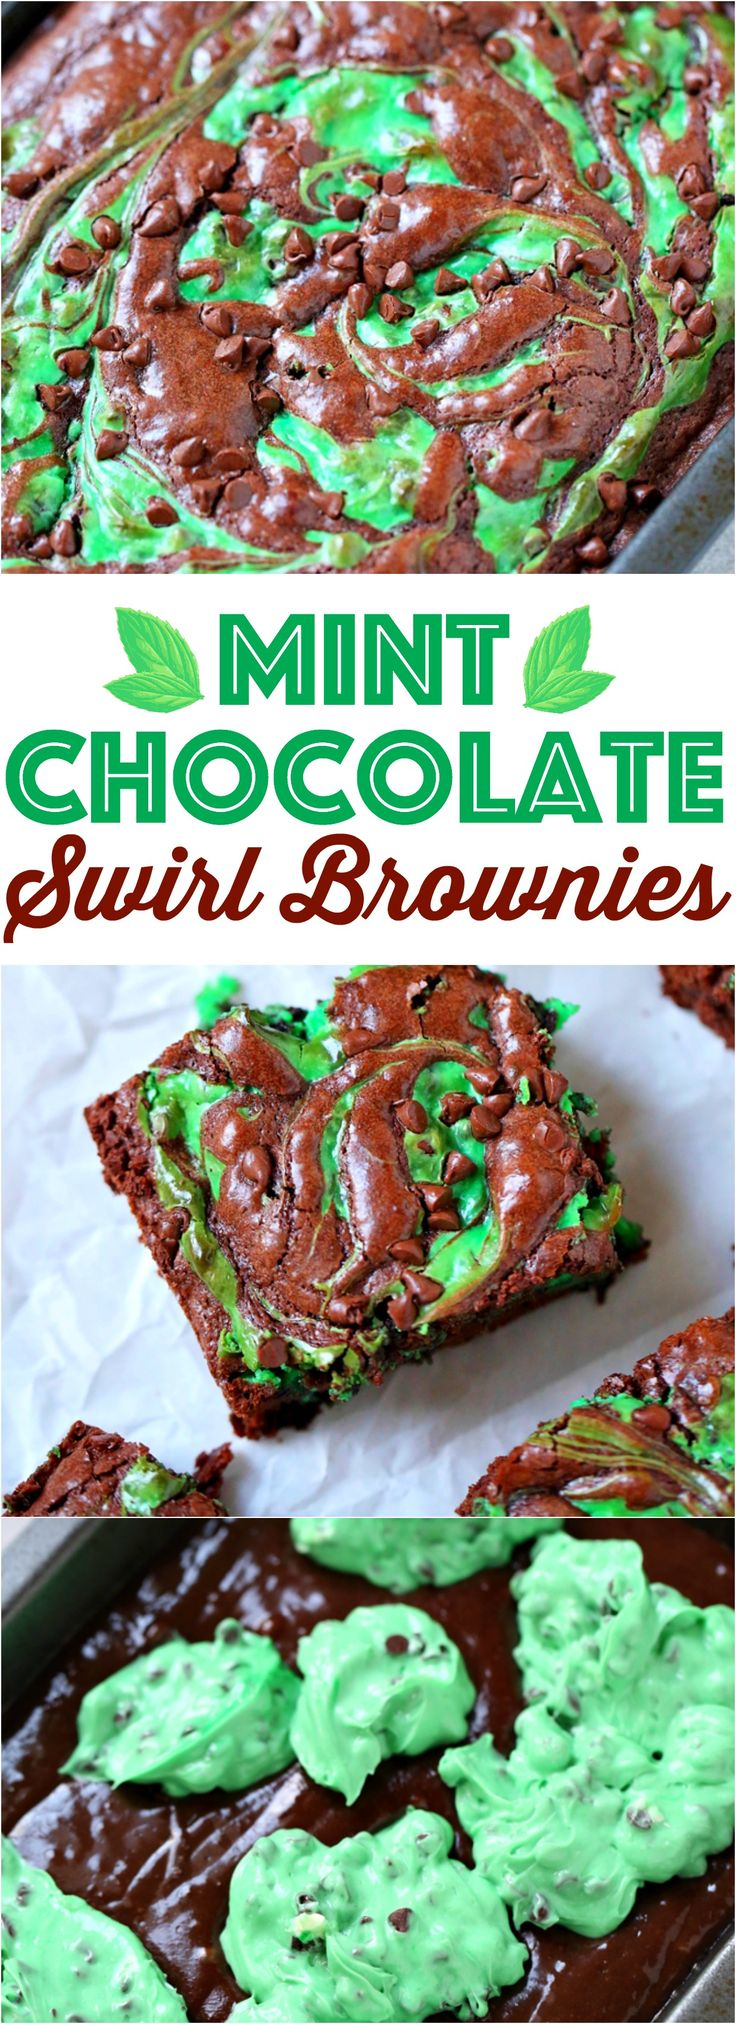 Mint Chocolate Chip Swirl Brownies recipe from The Country Cook - perfect for St. Patrick's Day!